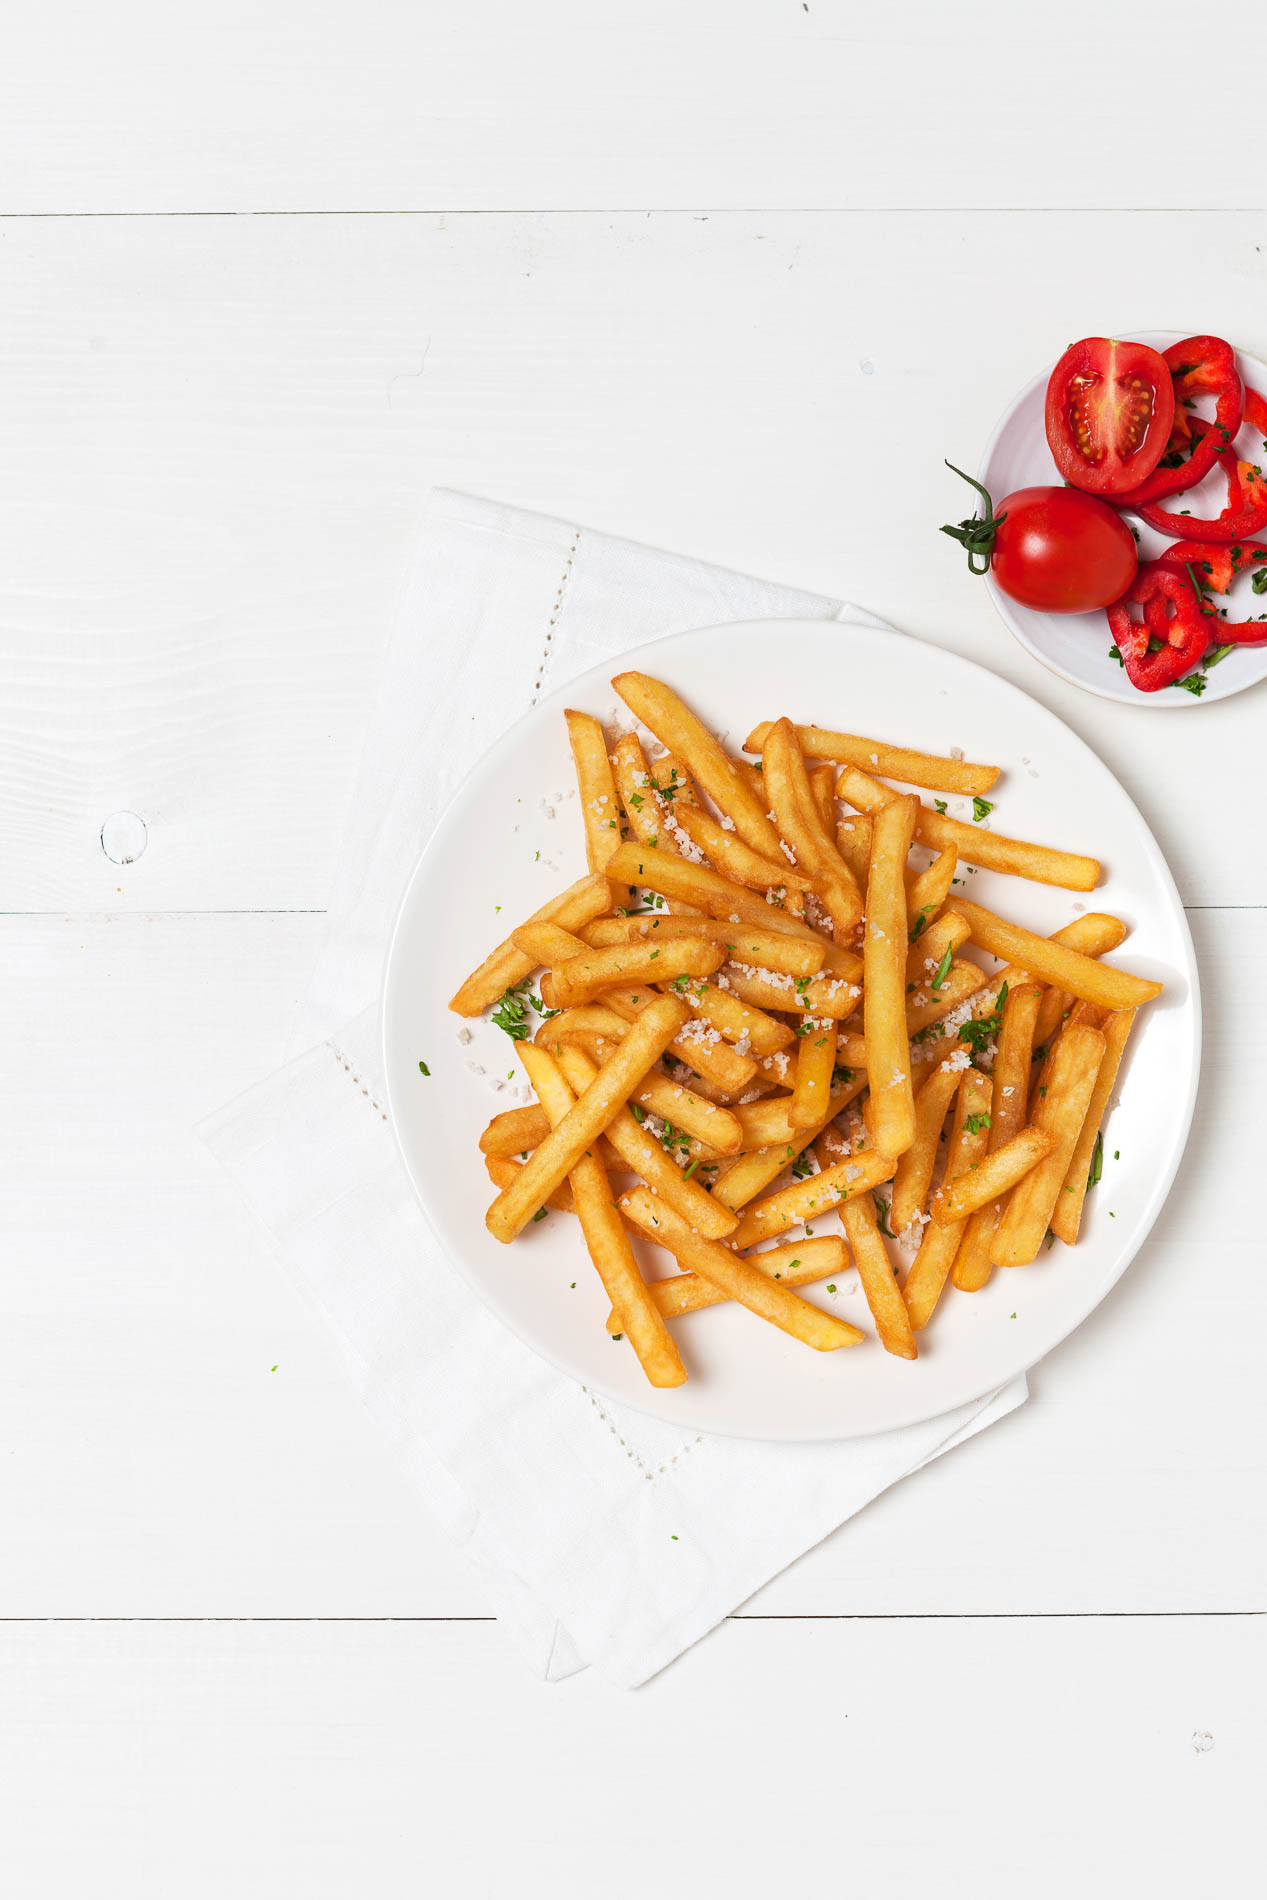 white plate with fries on a white wooden table with tomatoes